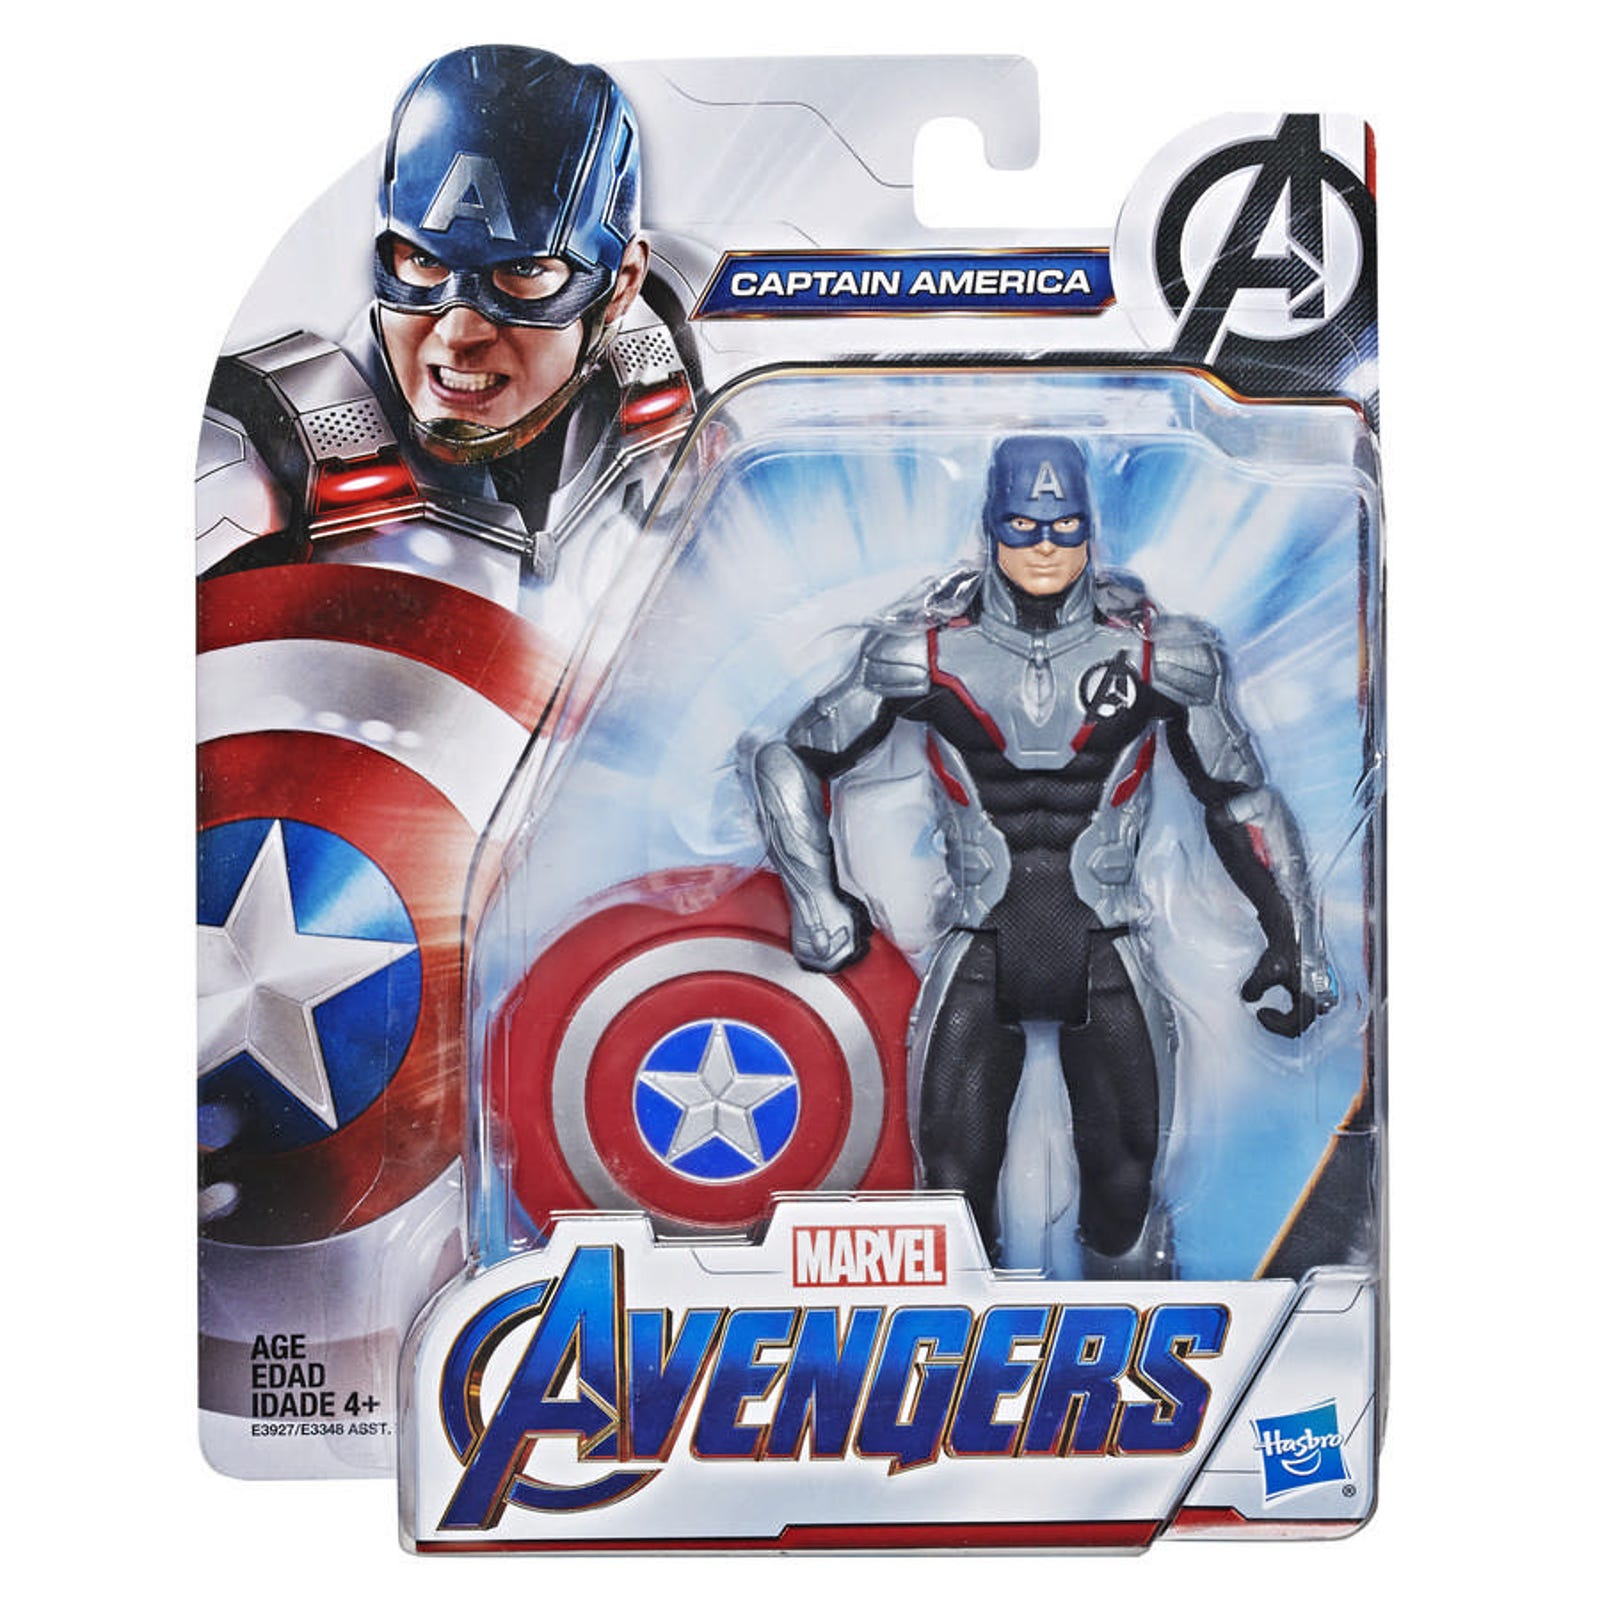 $10 will get you one of these basic Endgame action figures—I hope you like spacesuits.